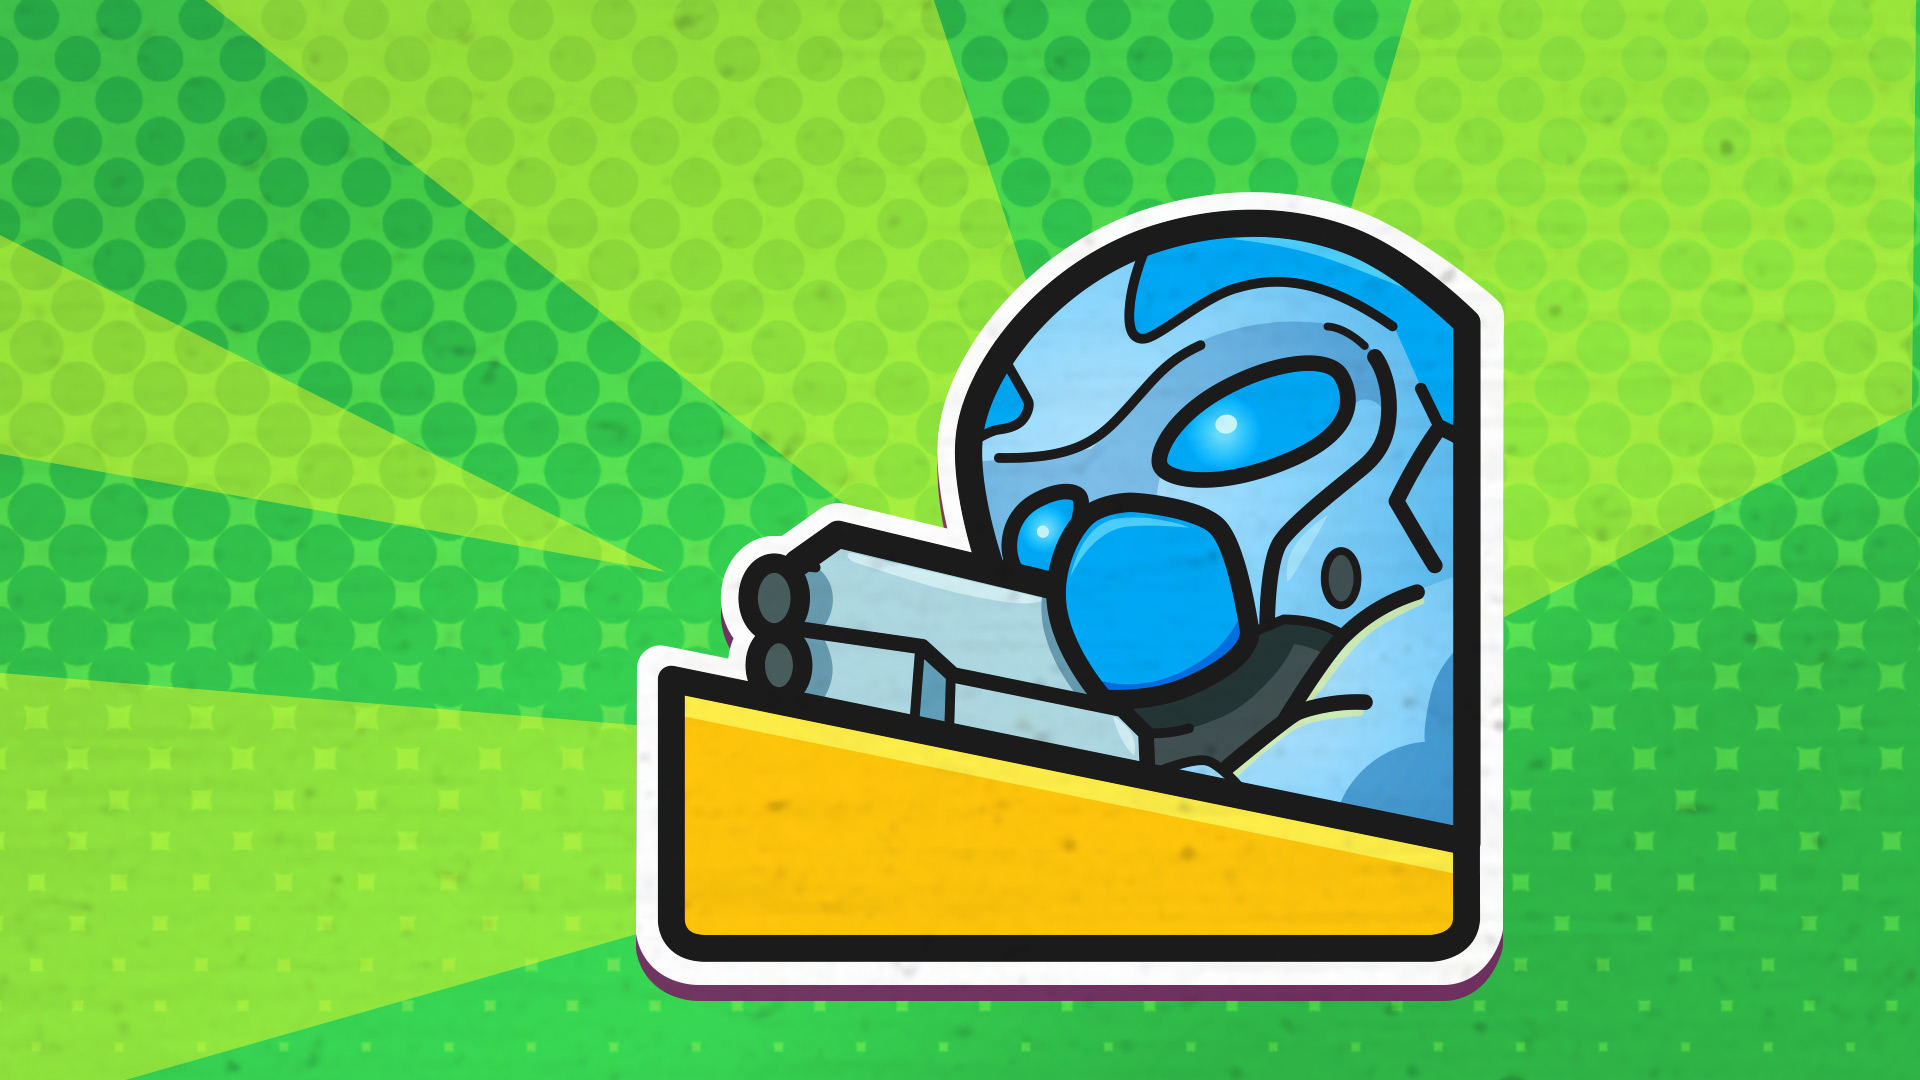 Icon for Fortifiplaytion